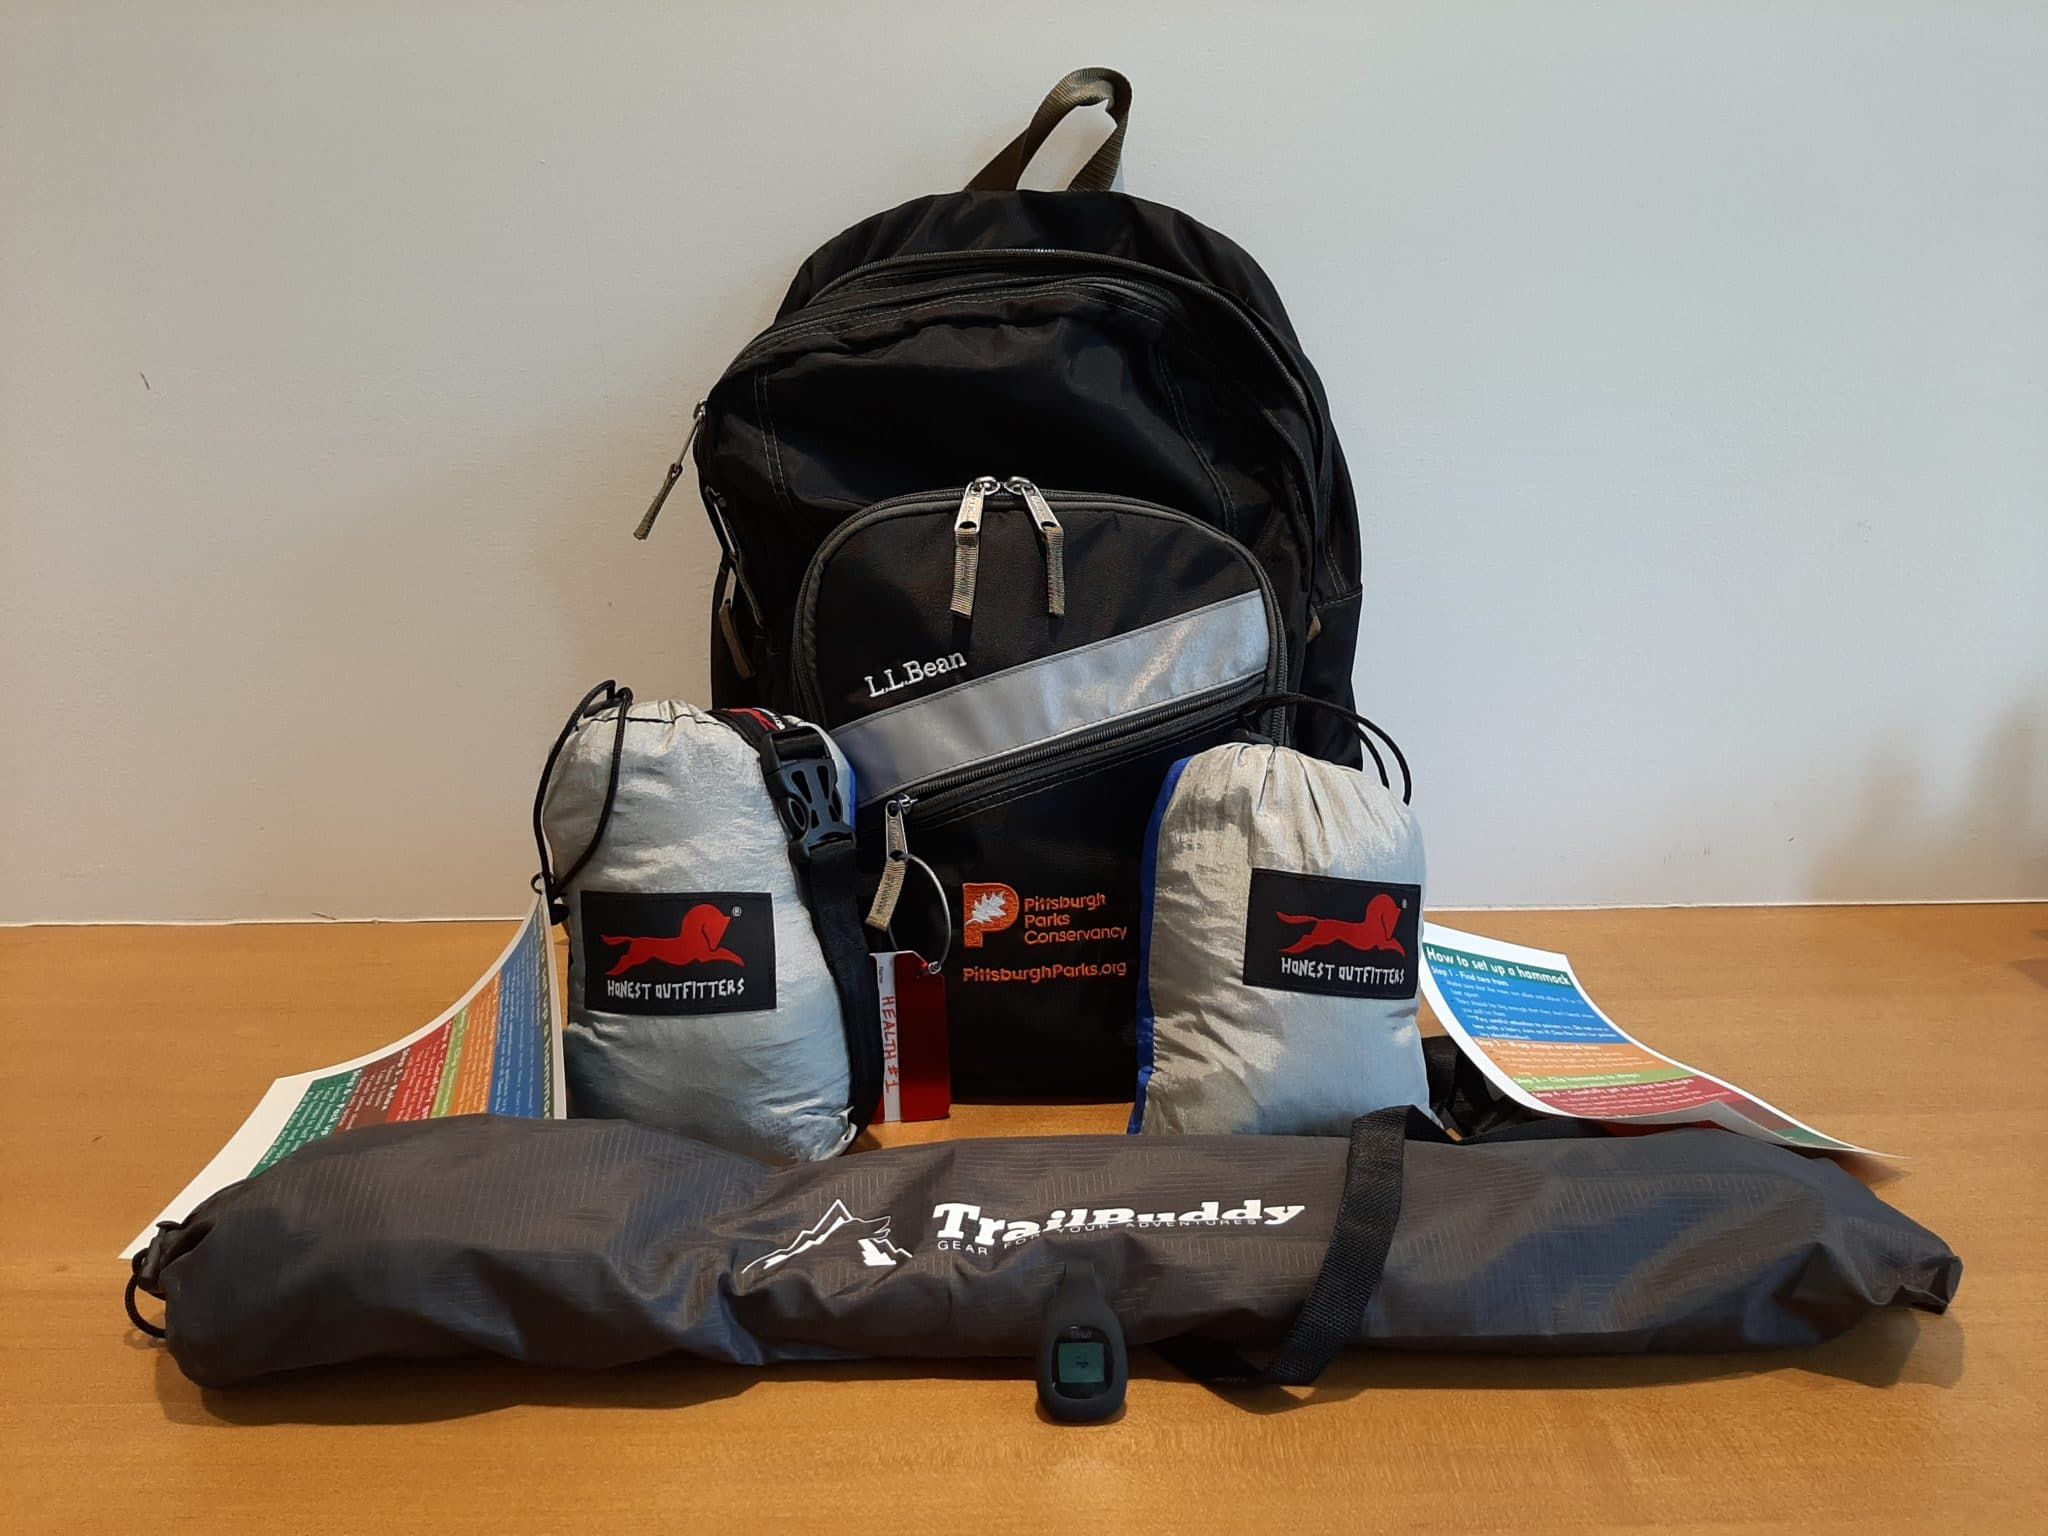 A backpack with materials and guides